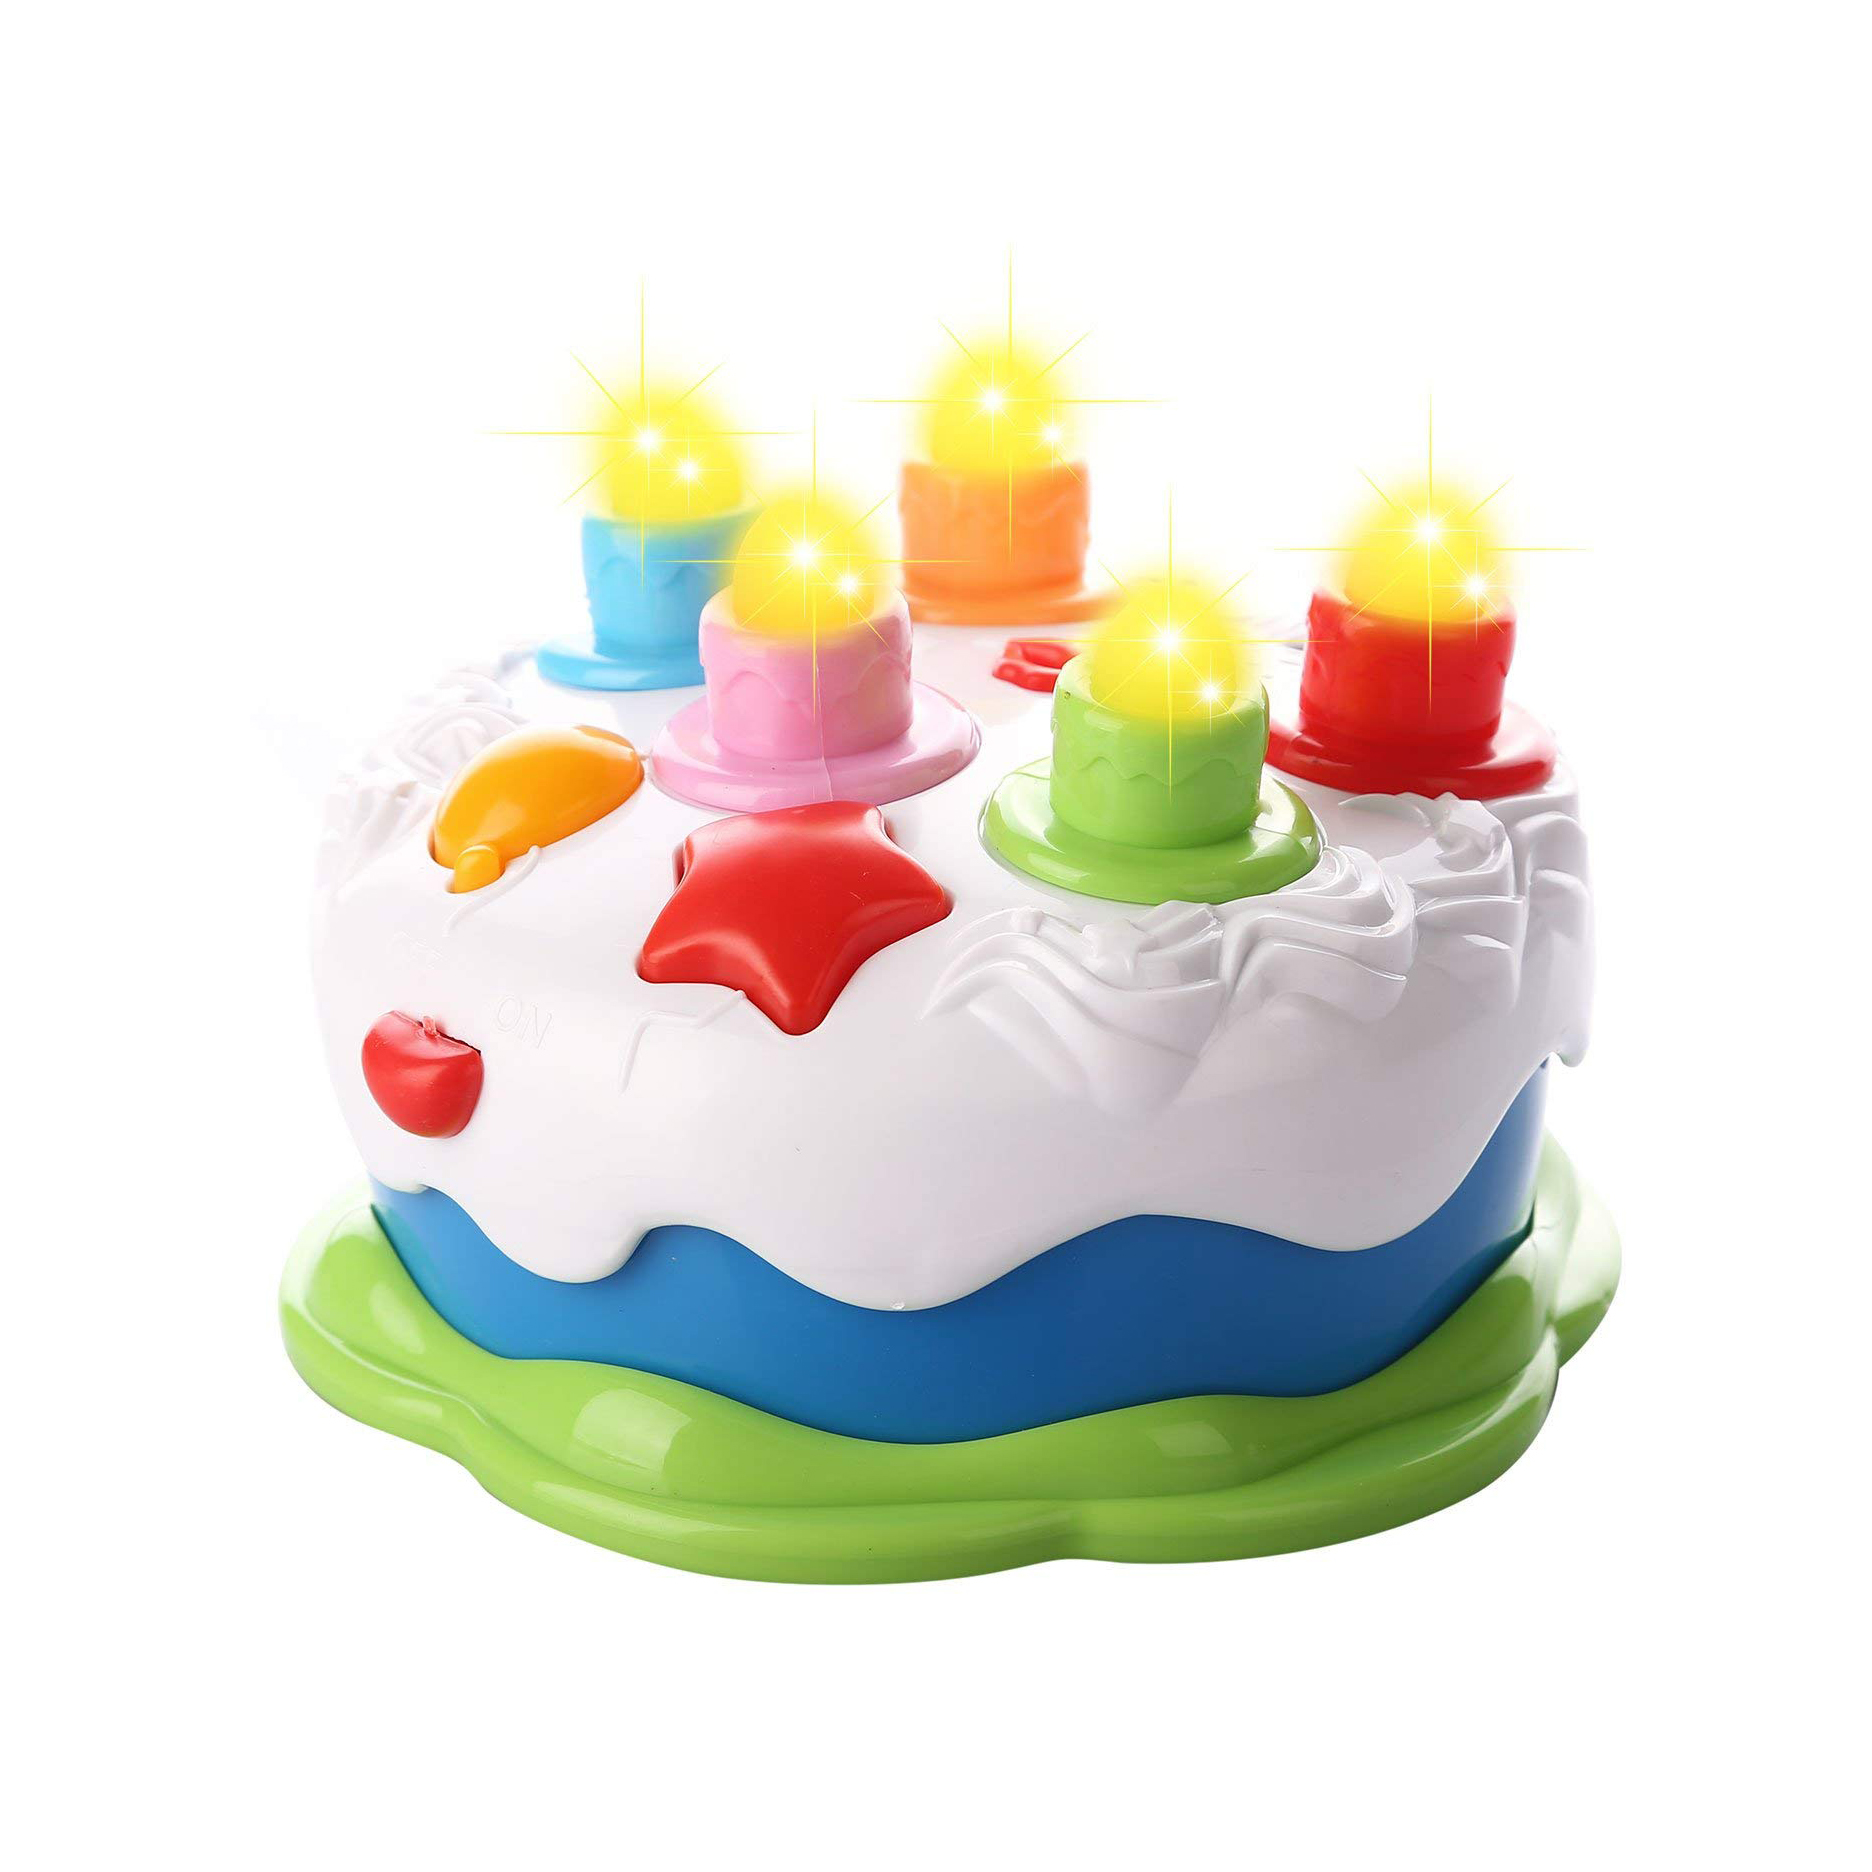 Fantastic Kids Birthday Cake Toy For Baby With Counting Candles Music Funny Birthday Cards Online Barepcheapnameinfo